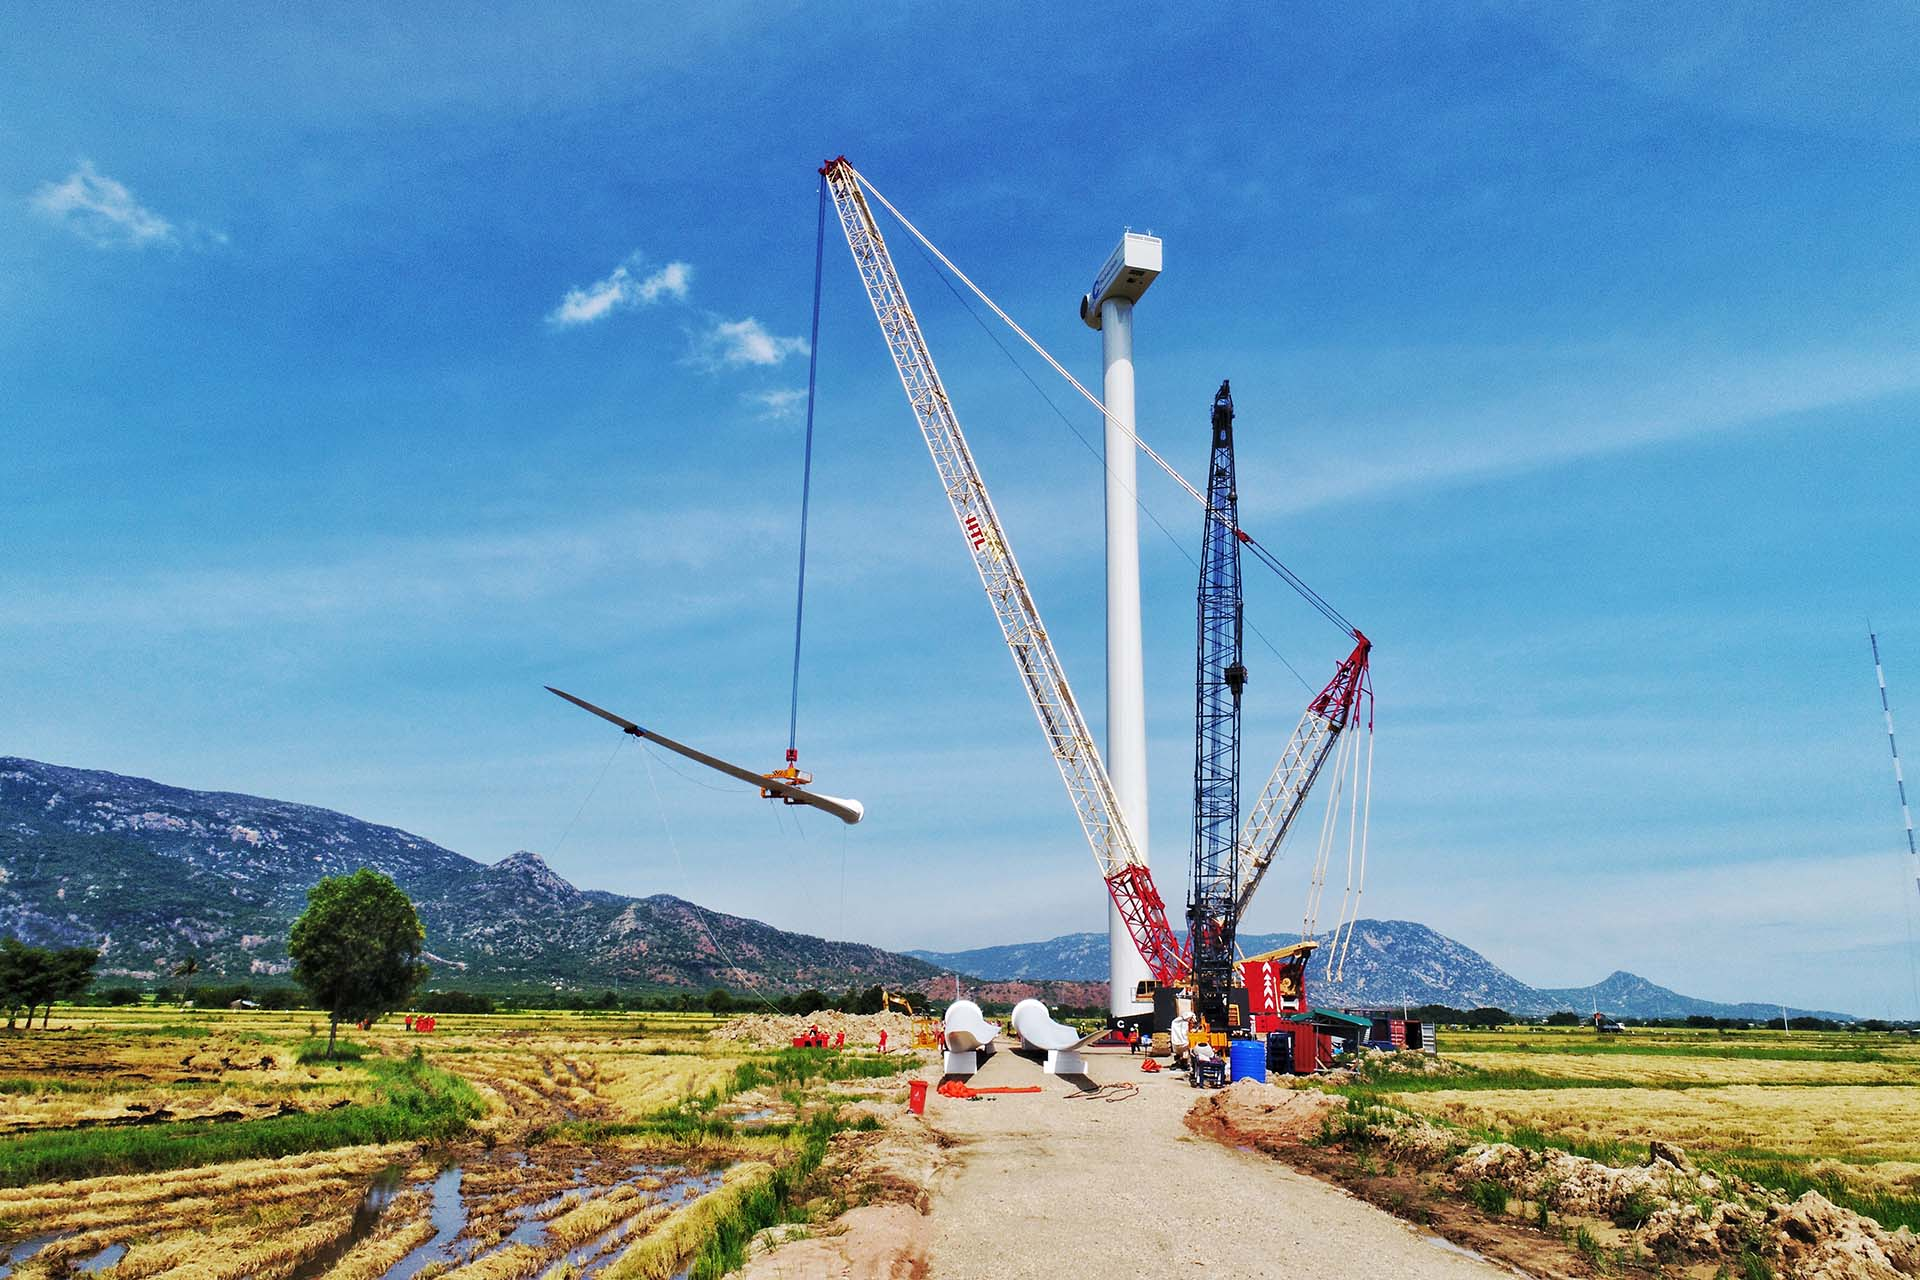 We were also owner's engineer for the Dam Nai onshore wind farm in Vietnam